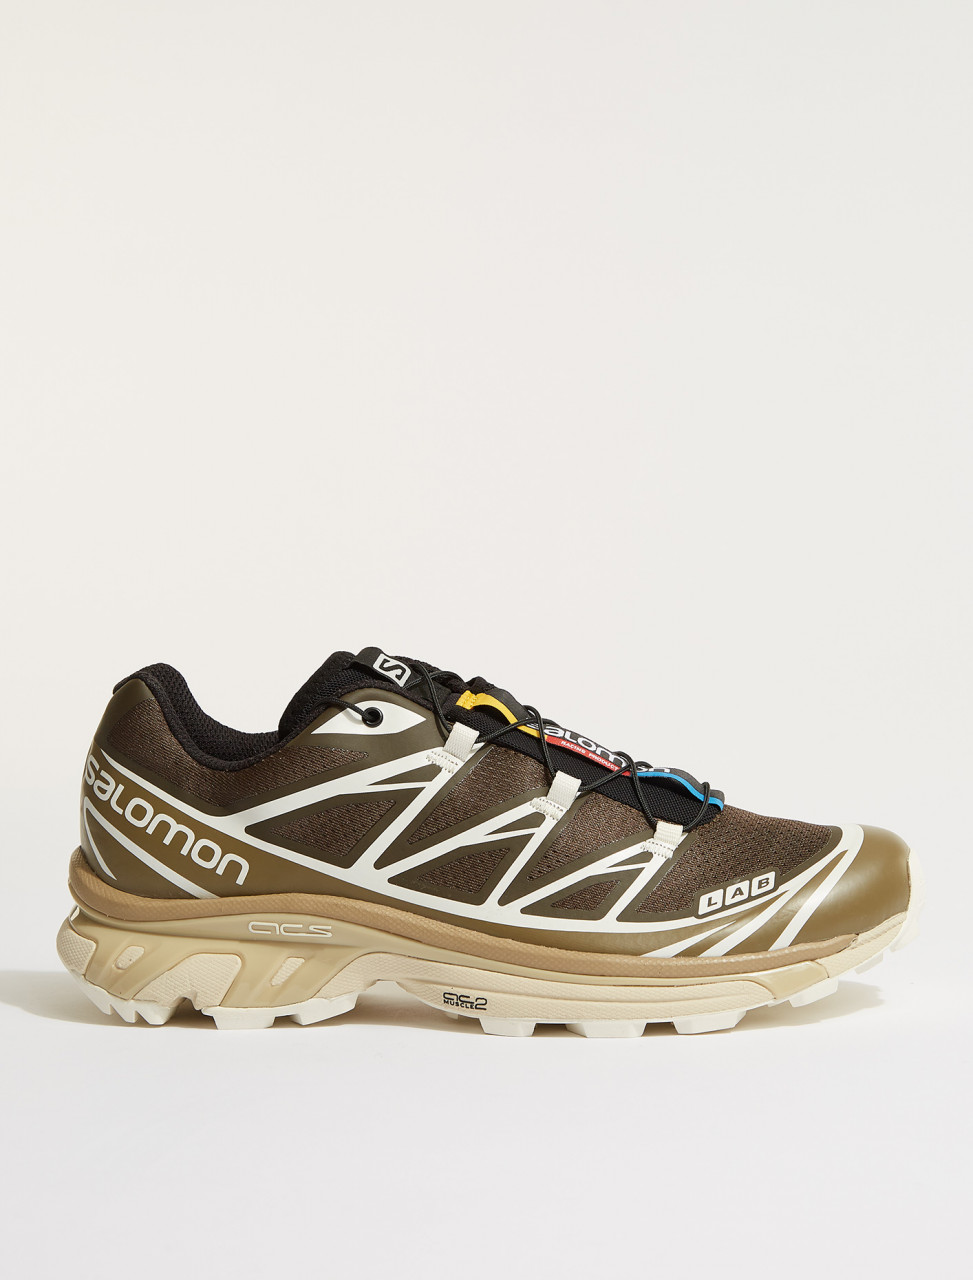 L41395000 SALOMON XT 6 ADVANCED WREN KANGAROO VANILLA ICE